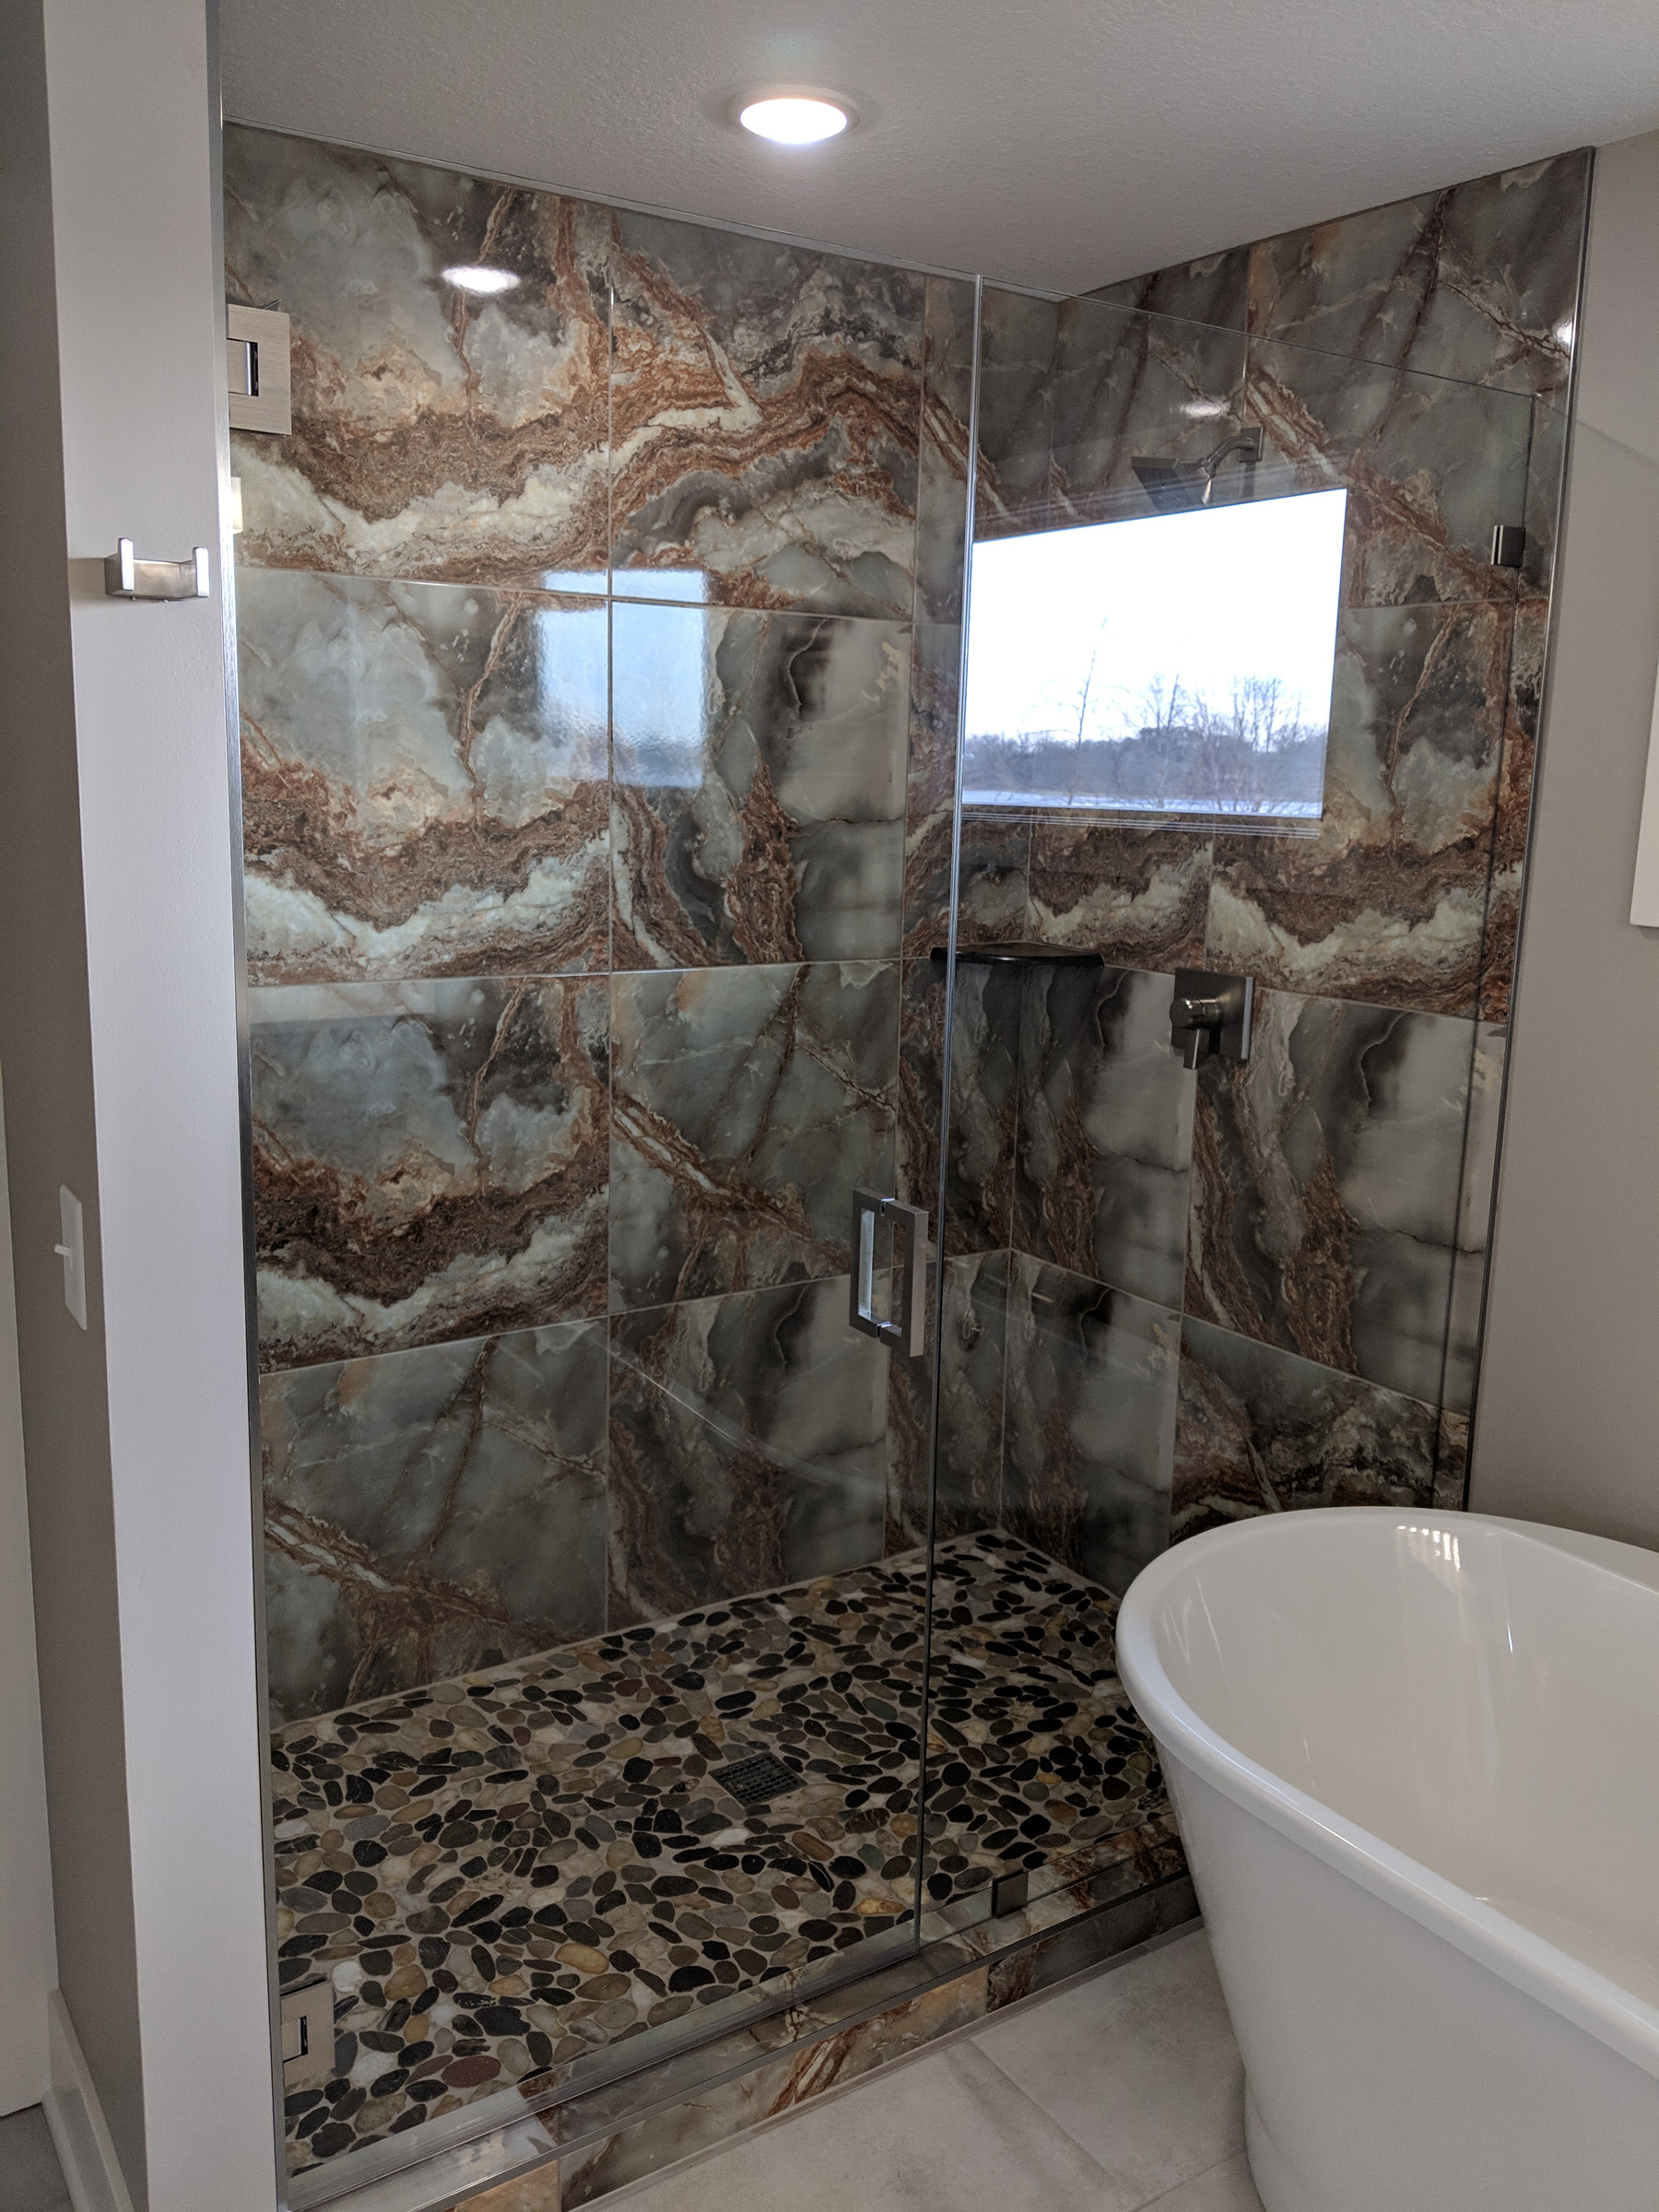 Stunning stone and tile shower with glass door